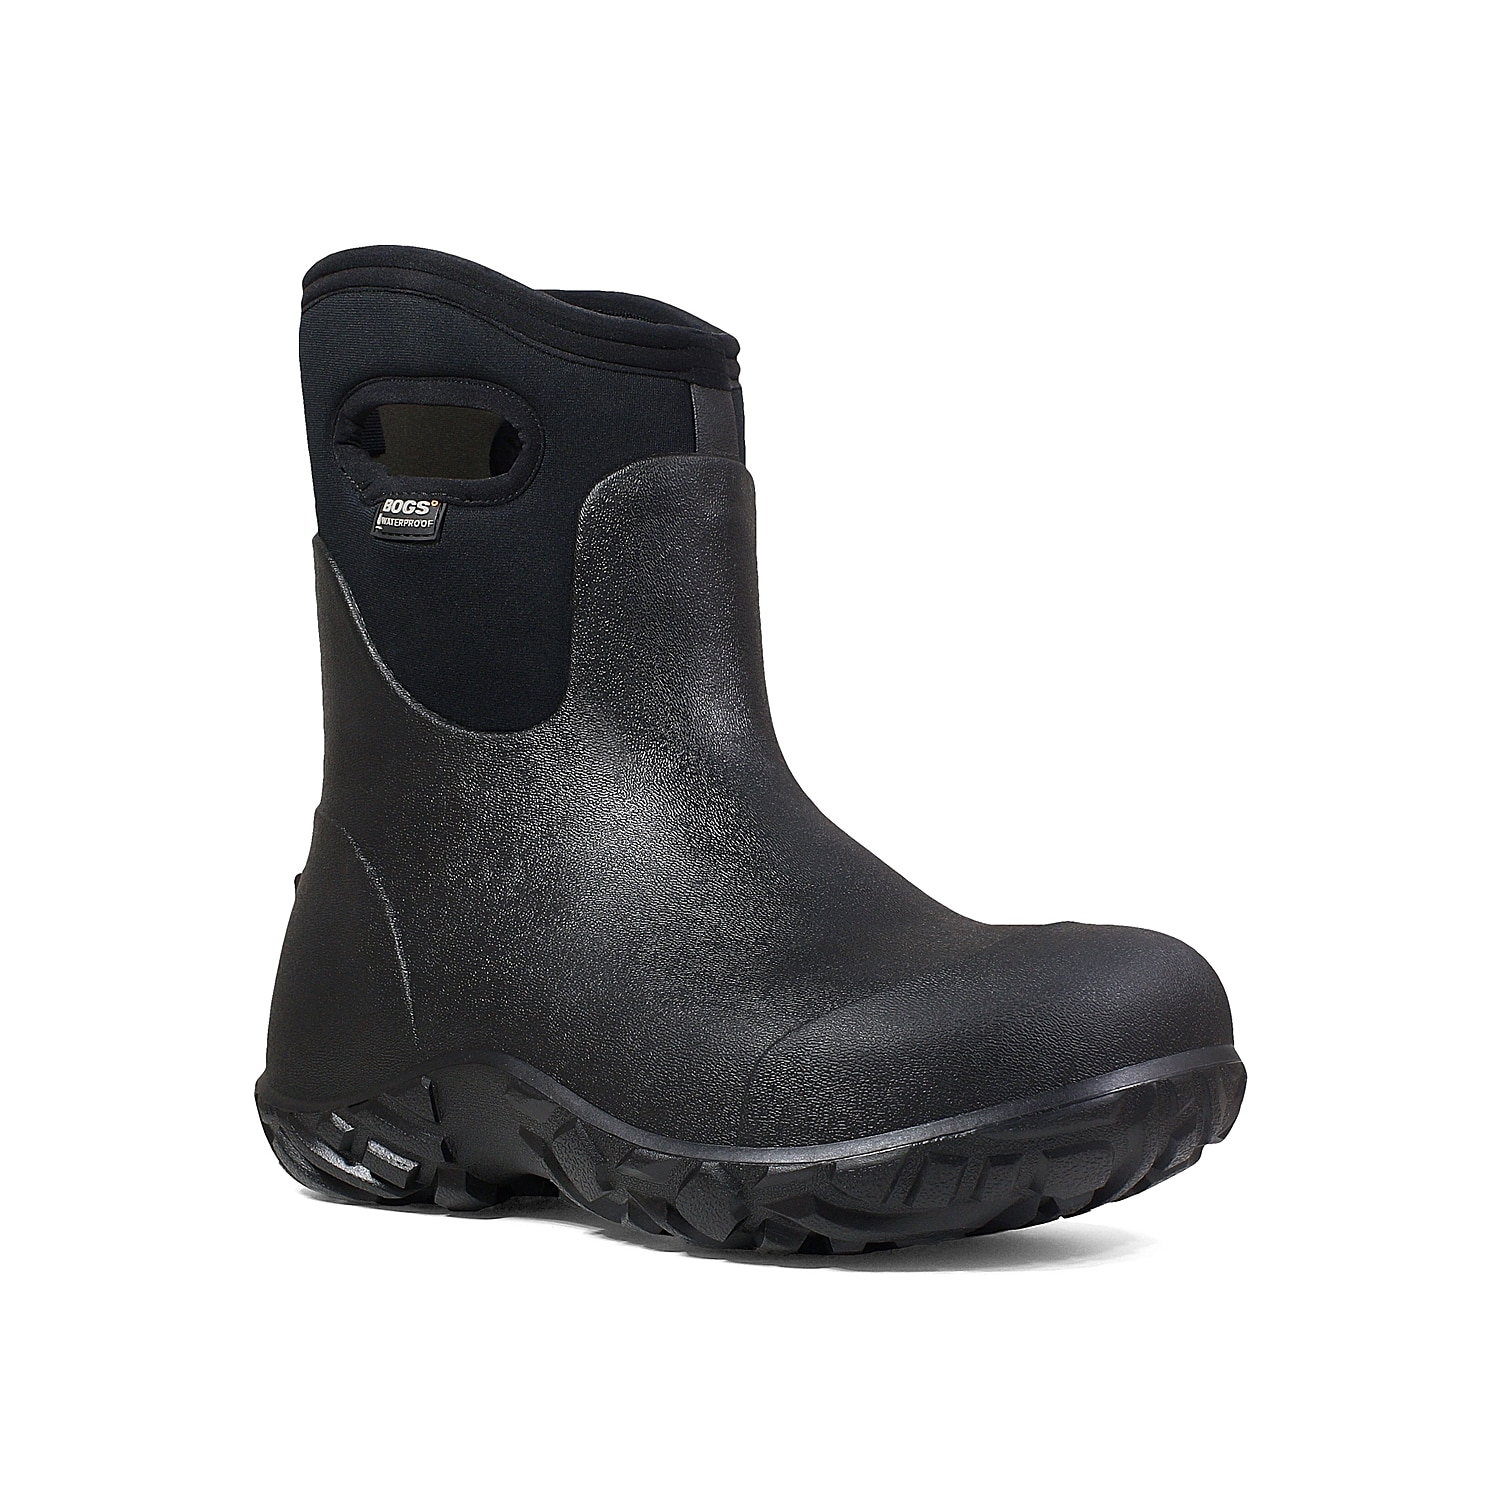 Protect your feet with the workman mid boot from Bogs. This work boot features seamless technology and a BioGrip rubber sole for extra durability and traction while on or off the job!